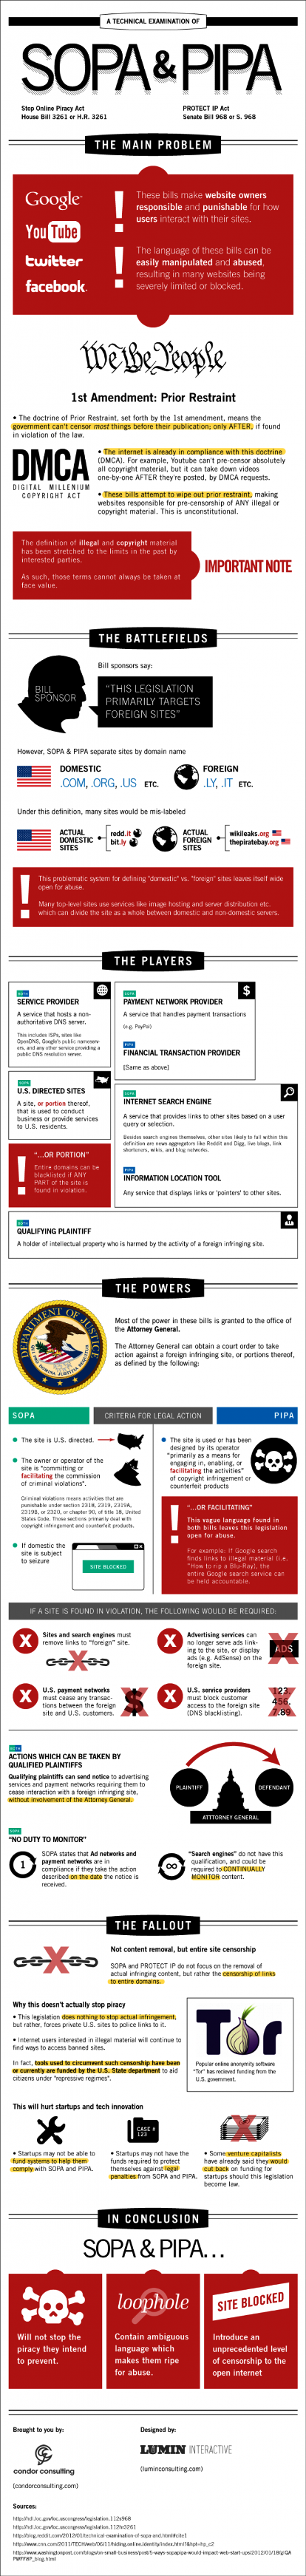 A Technical Examination of SOPA & PIPA #infographic